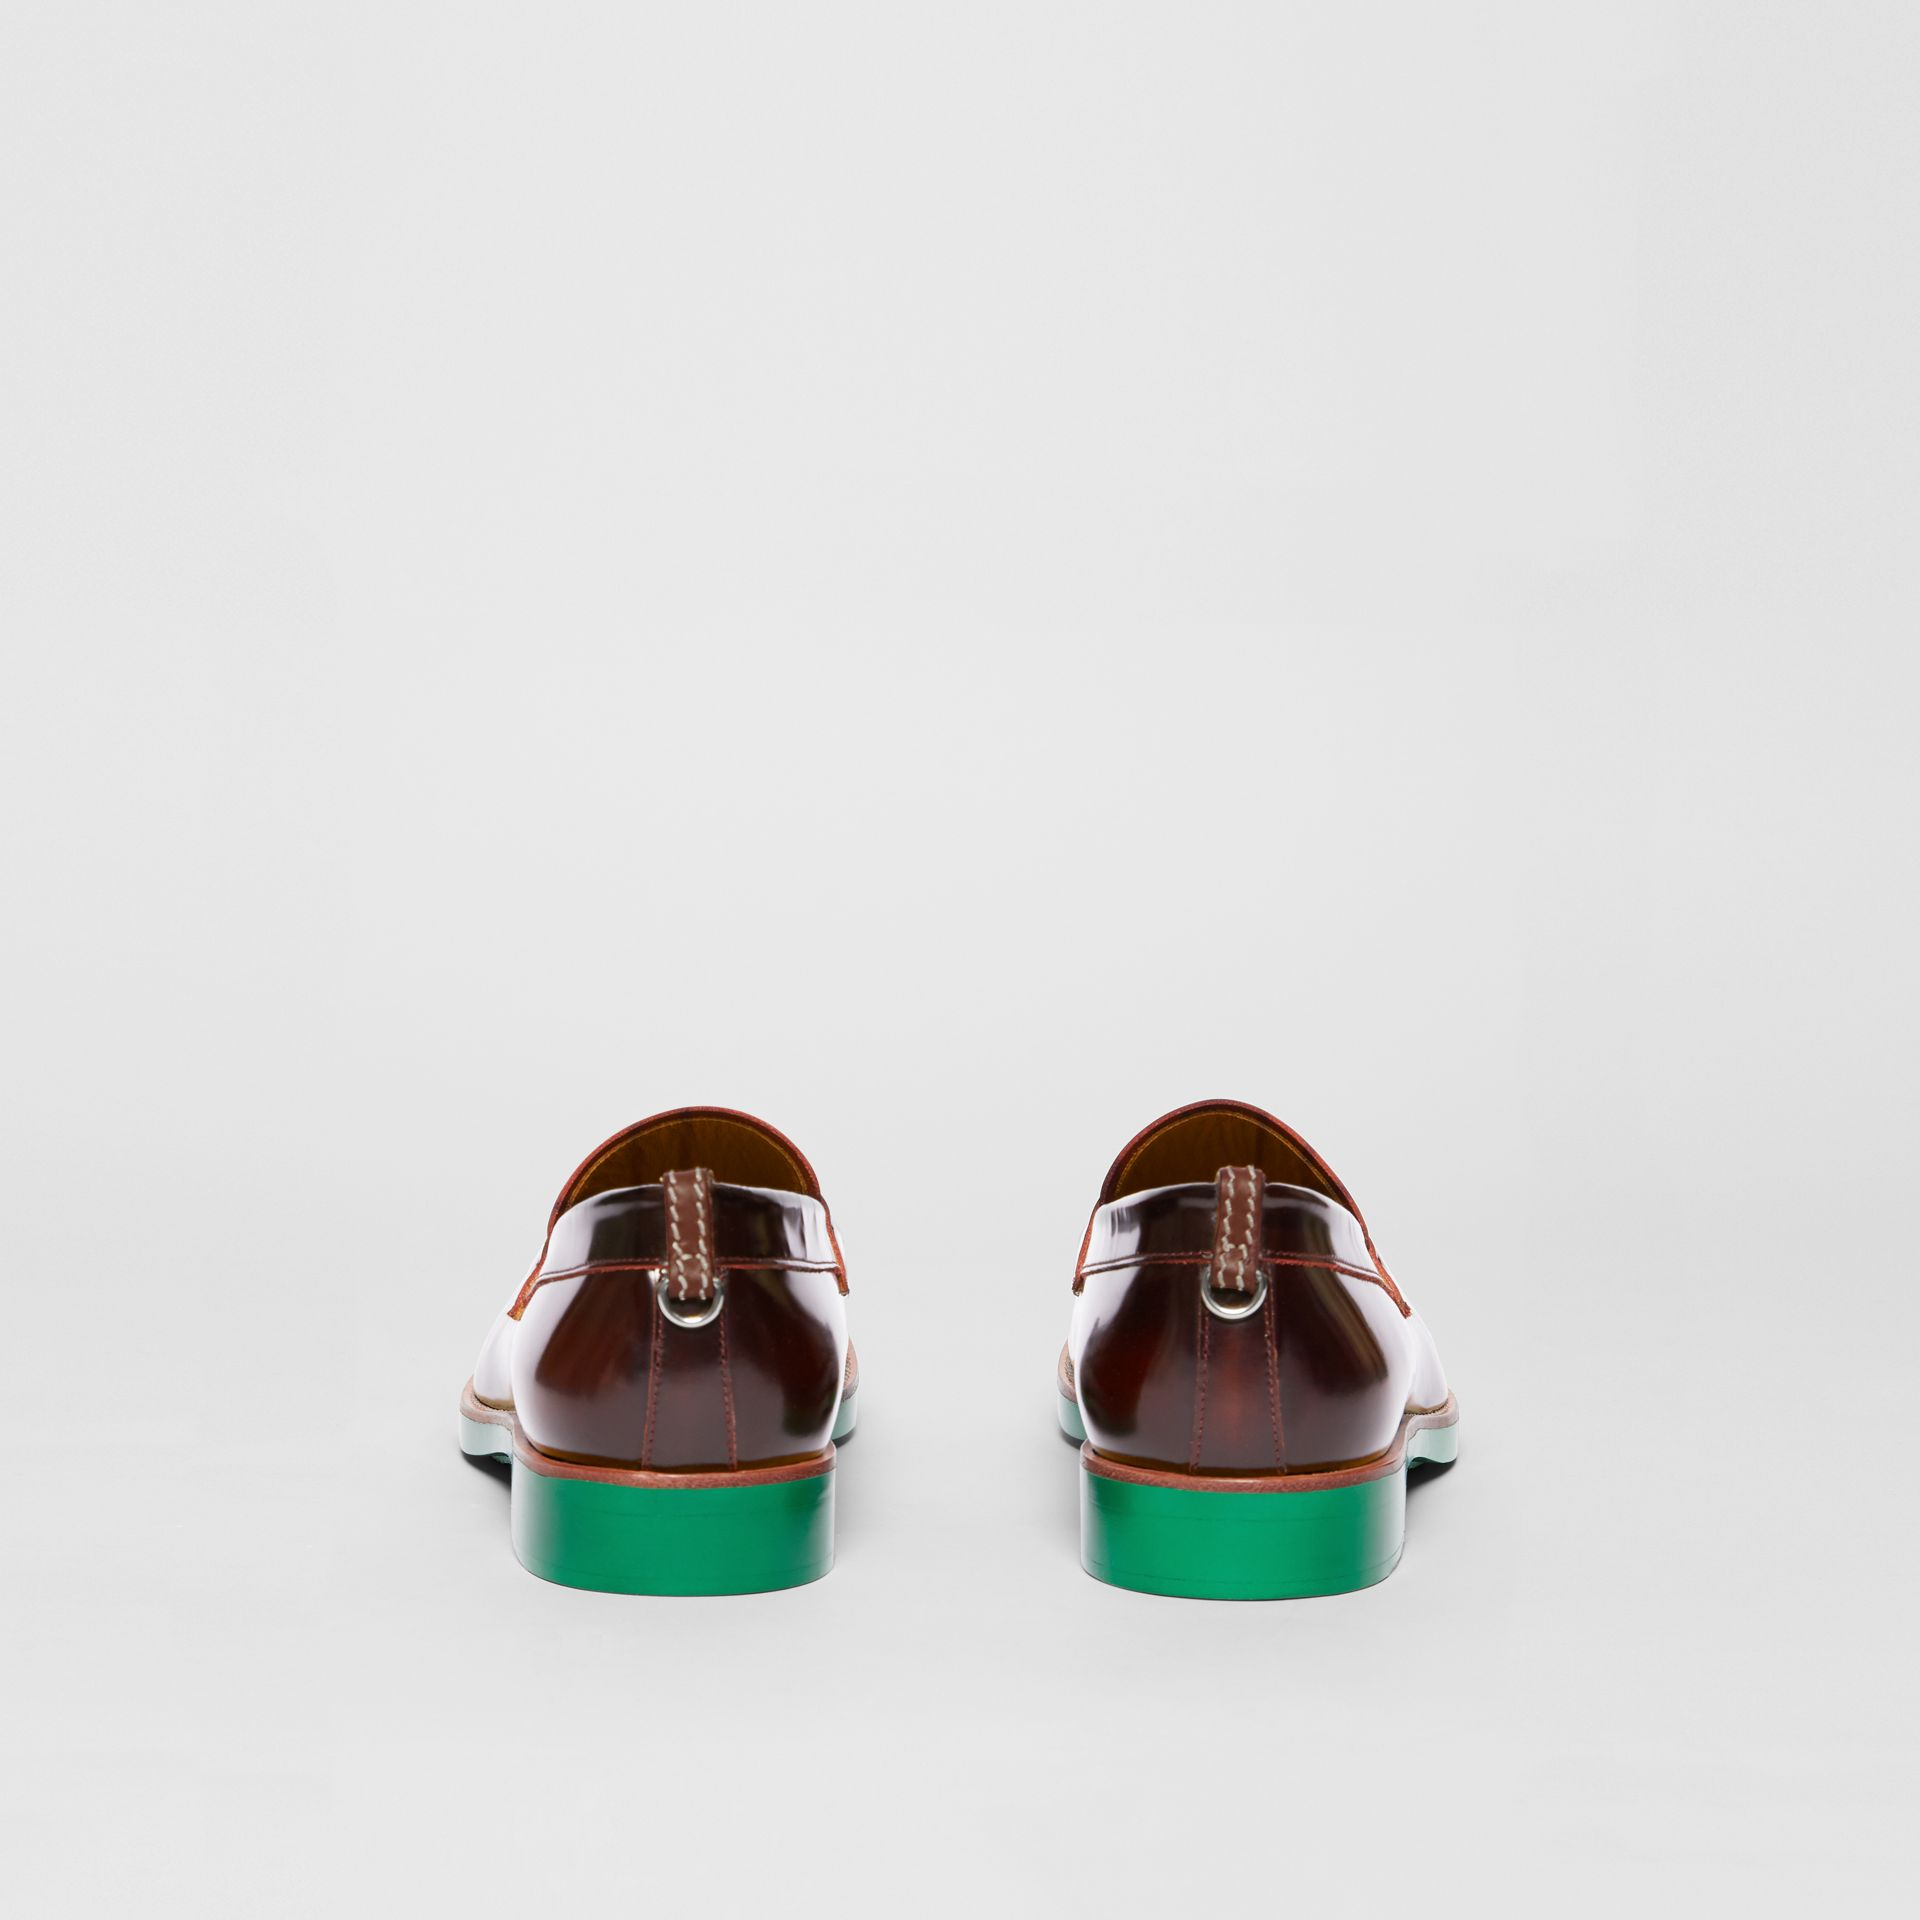 D-ring Detail Contrast Sole Leather Loafers in Bordeaux/green - Men | Burberry Singapore - gallery image 4